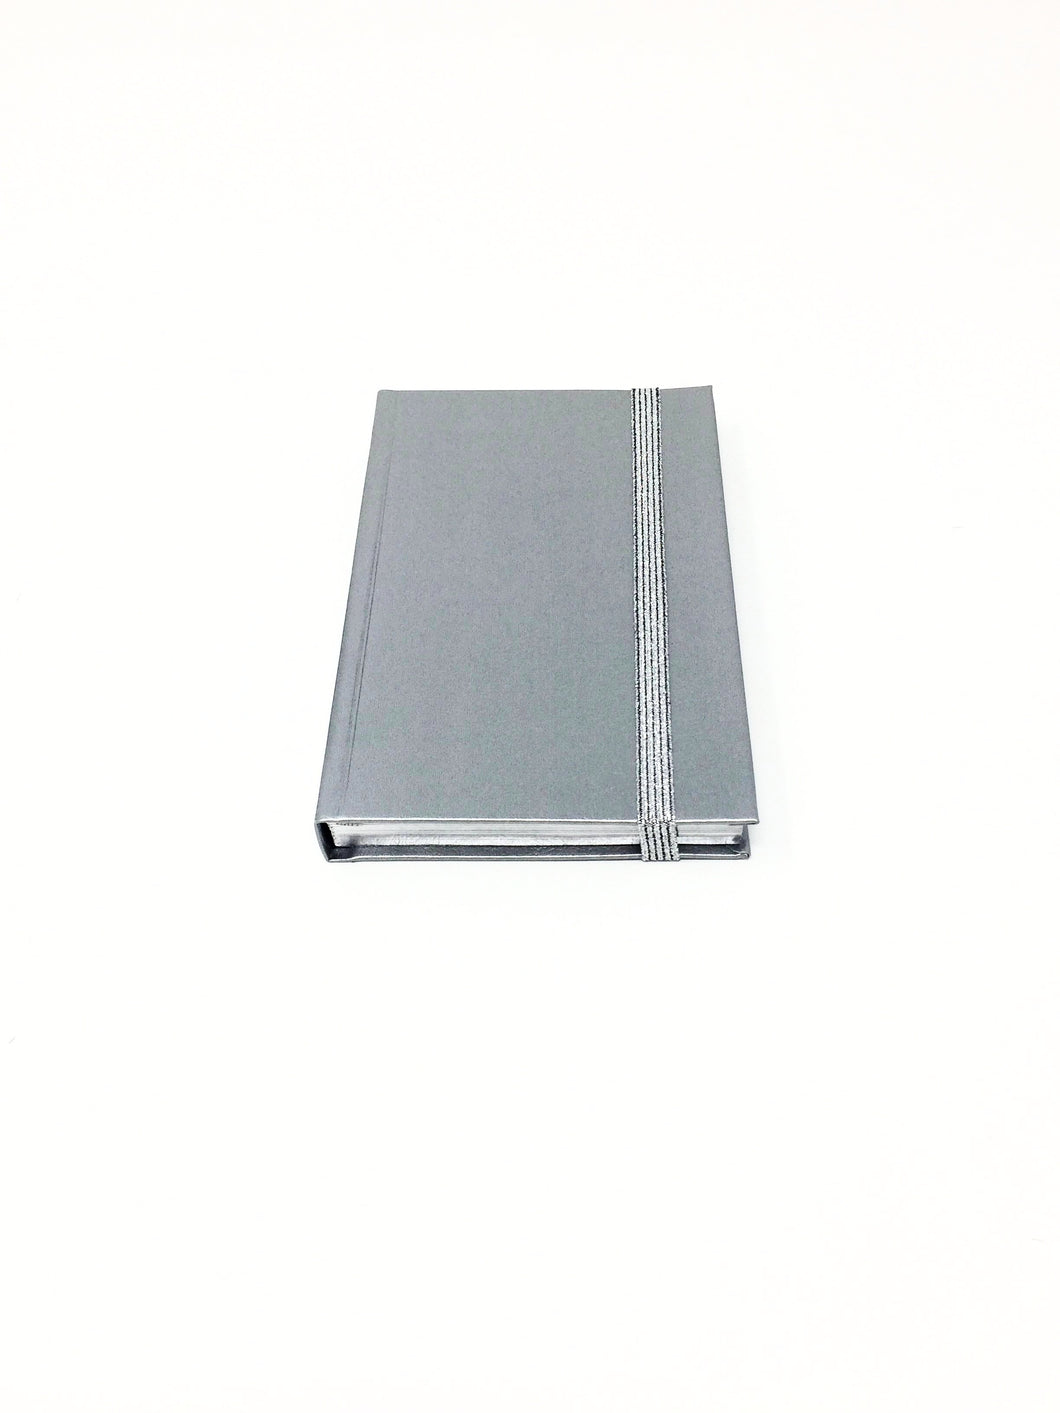 Italian small silver lined notebook